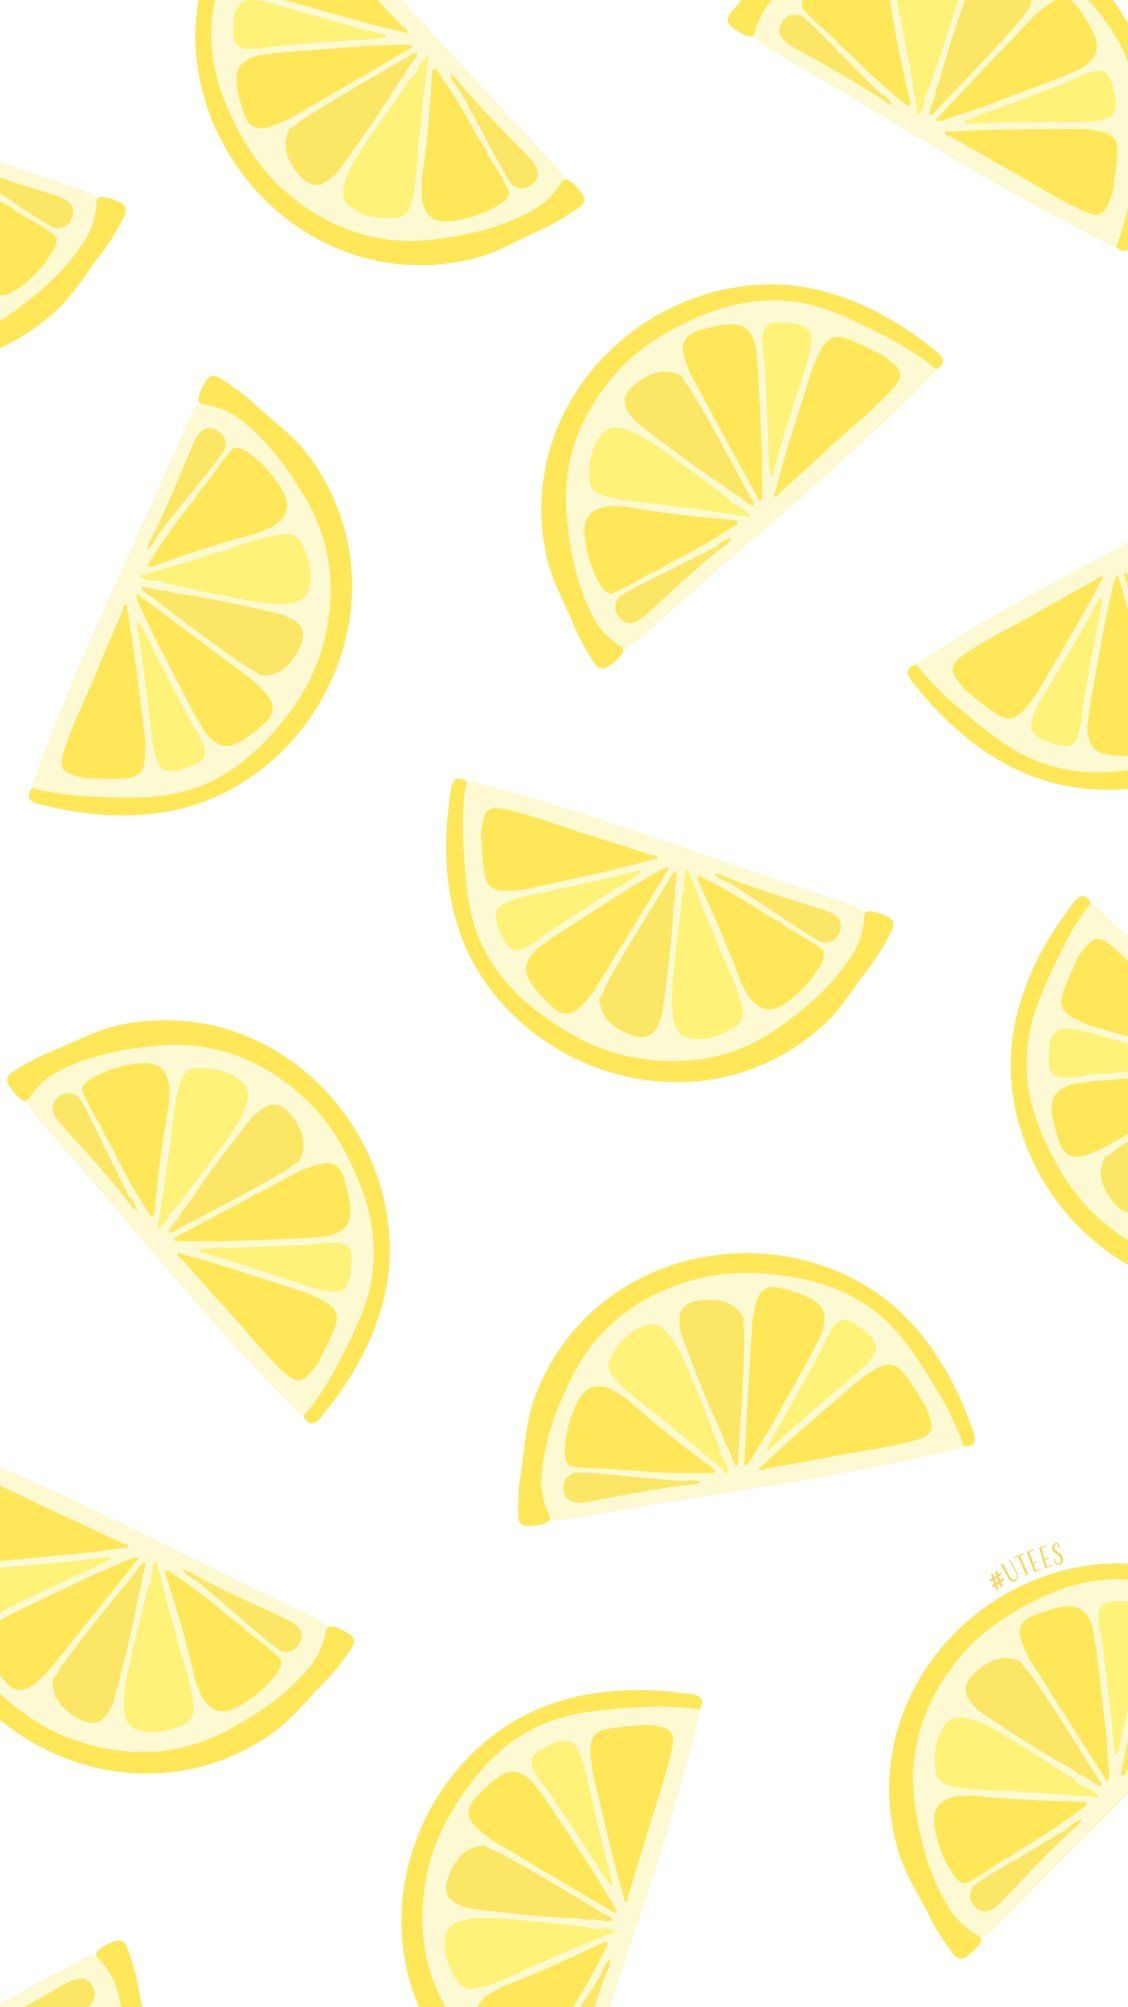 Lemon Love Iphone Backgrounds I Summer Phone Screensavers Wallpaper Iphone Summer Iphone Background Cute Backgrounds For Iphone